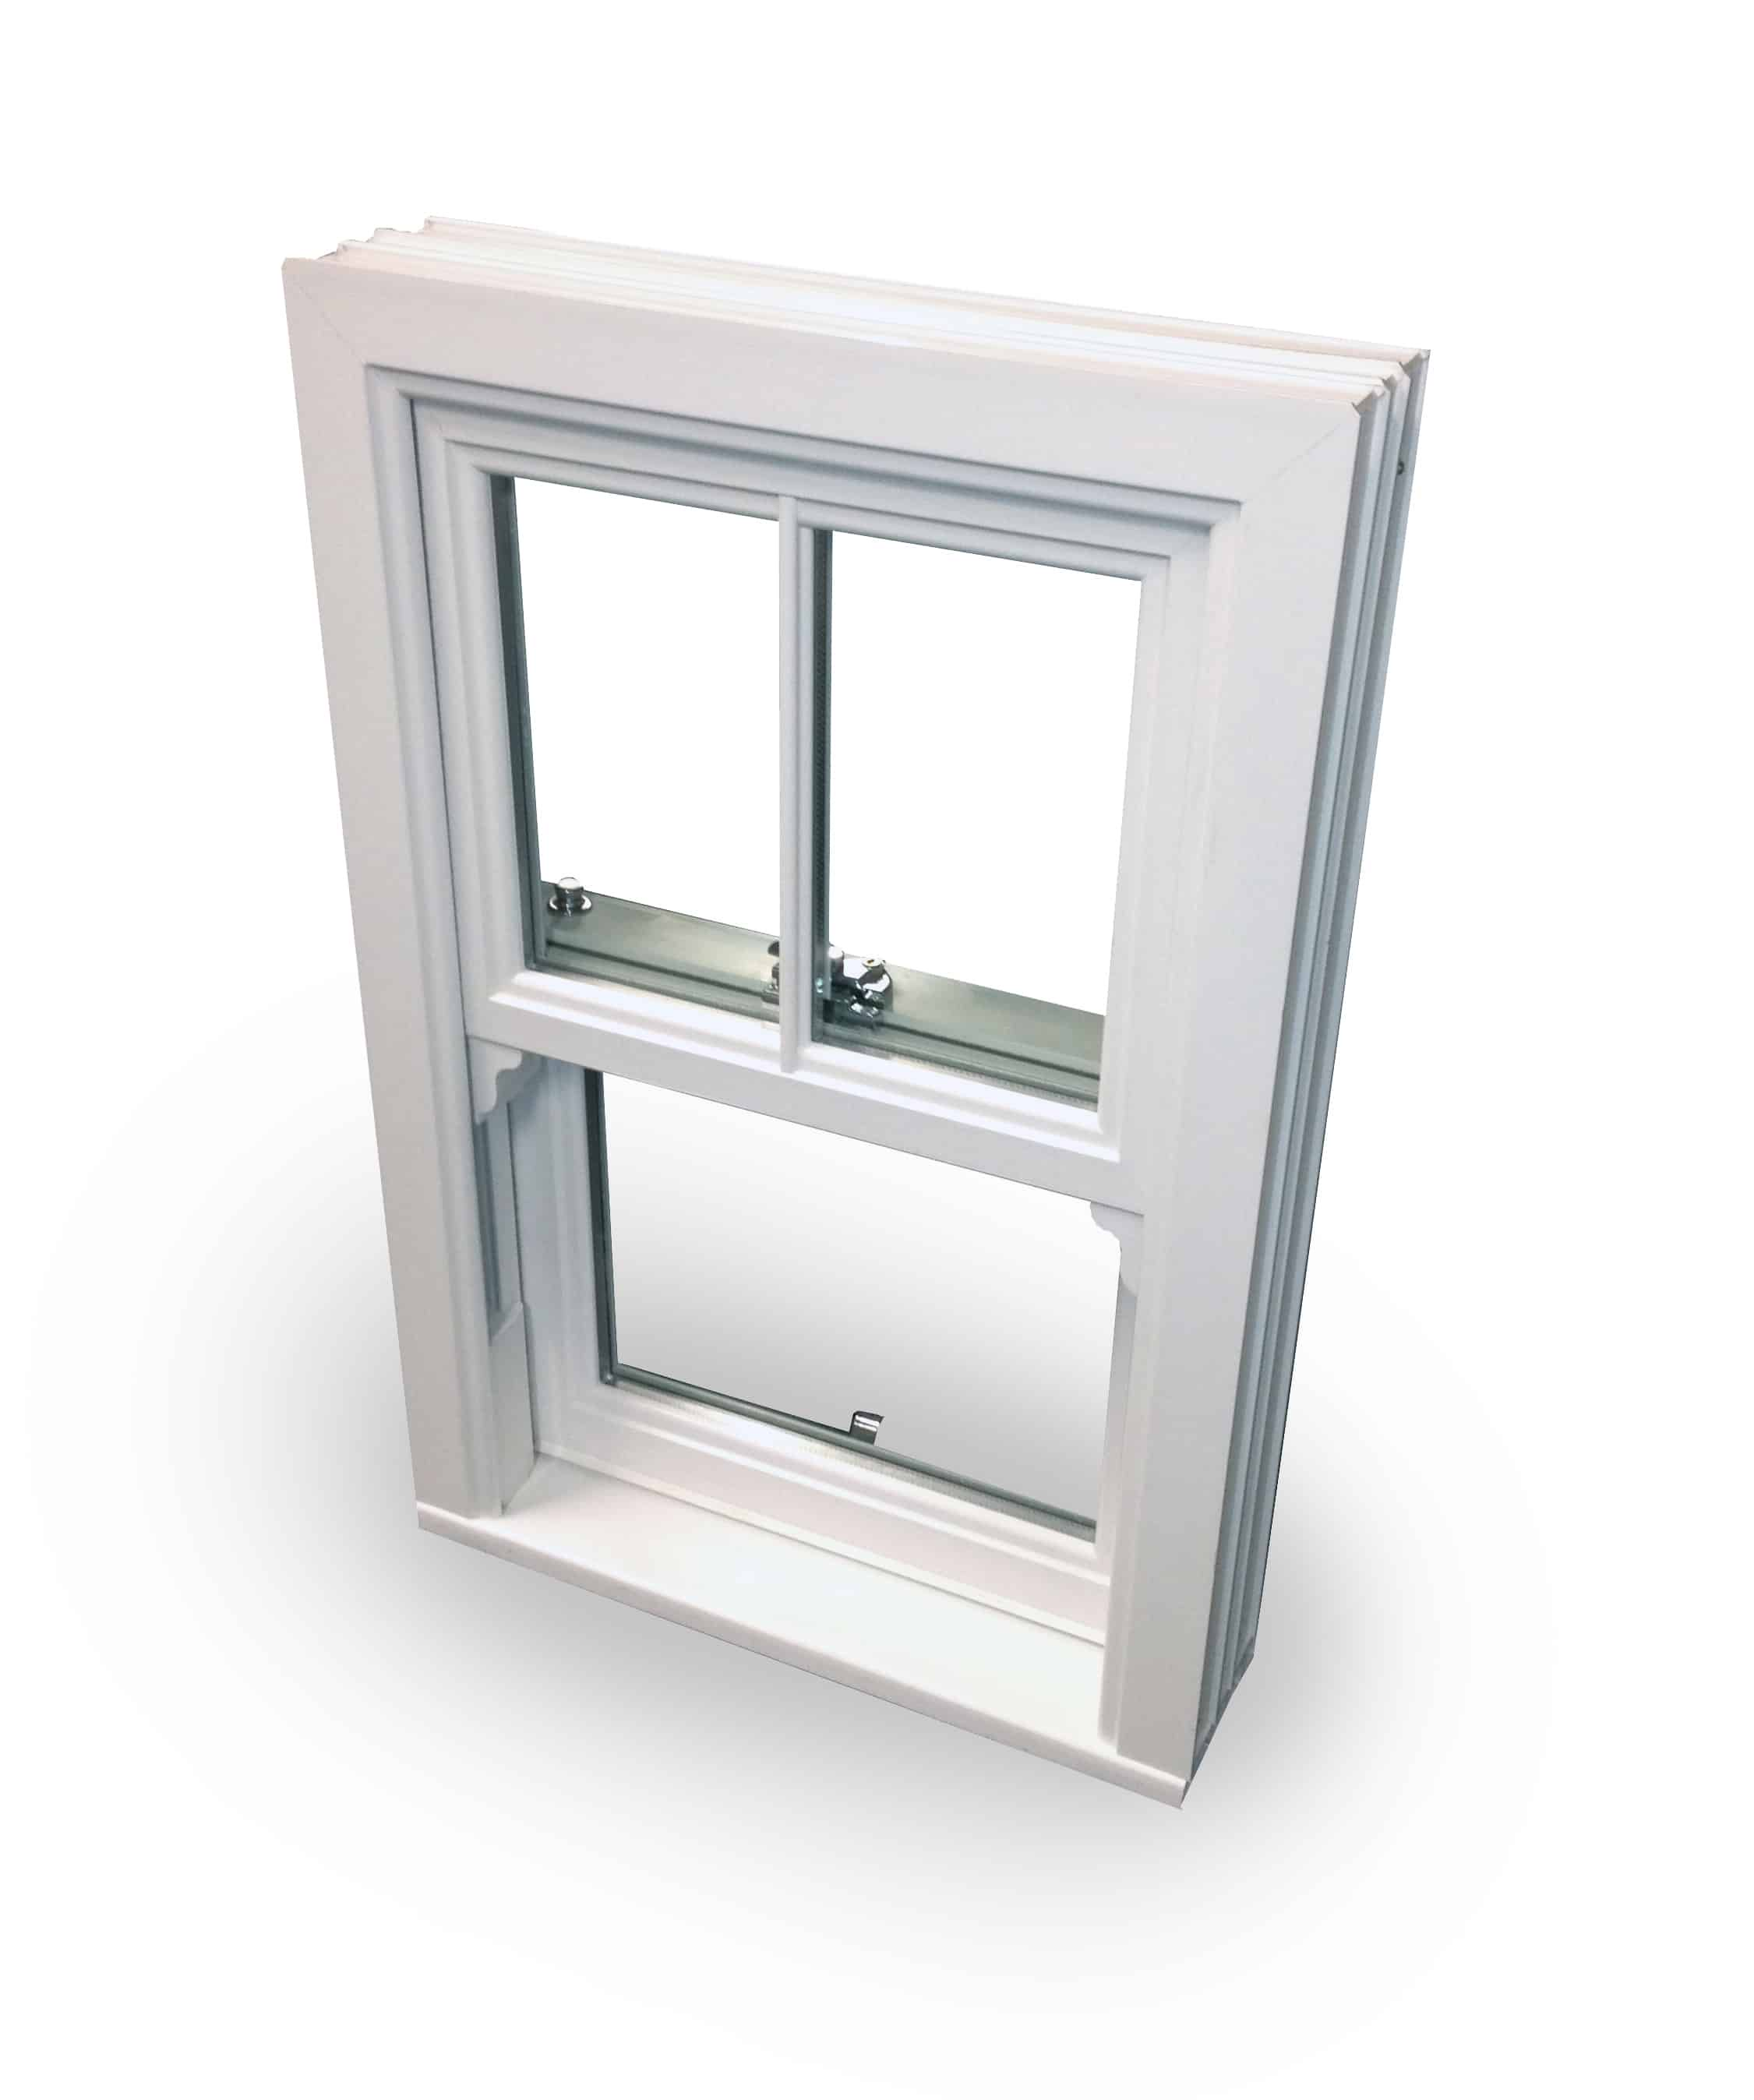 UPVC Vertical Sliding Sash Windows